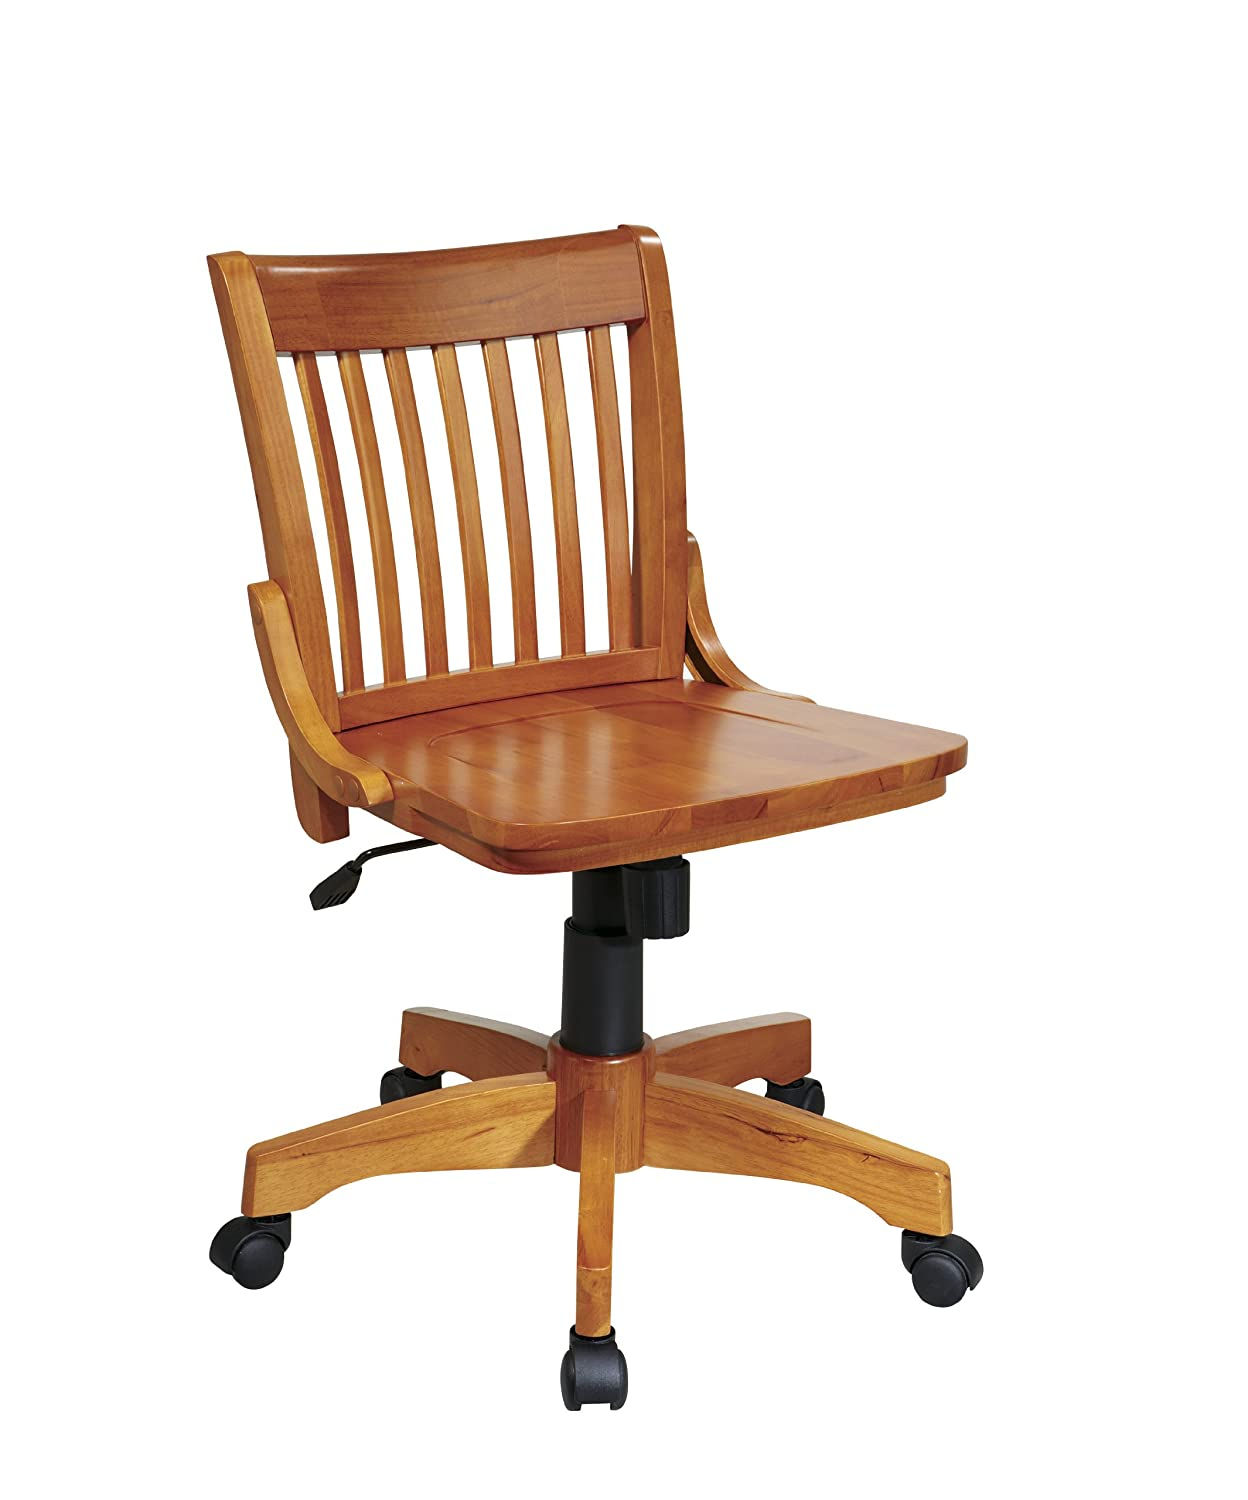 Amazon.com: Office Star Deluxe Armless Wood Bankers Desk Chair With Wood  Seat, Fruit Wood: Kitchen U0026 Dining